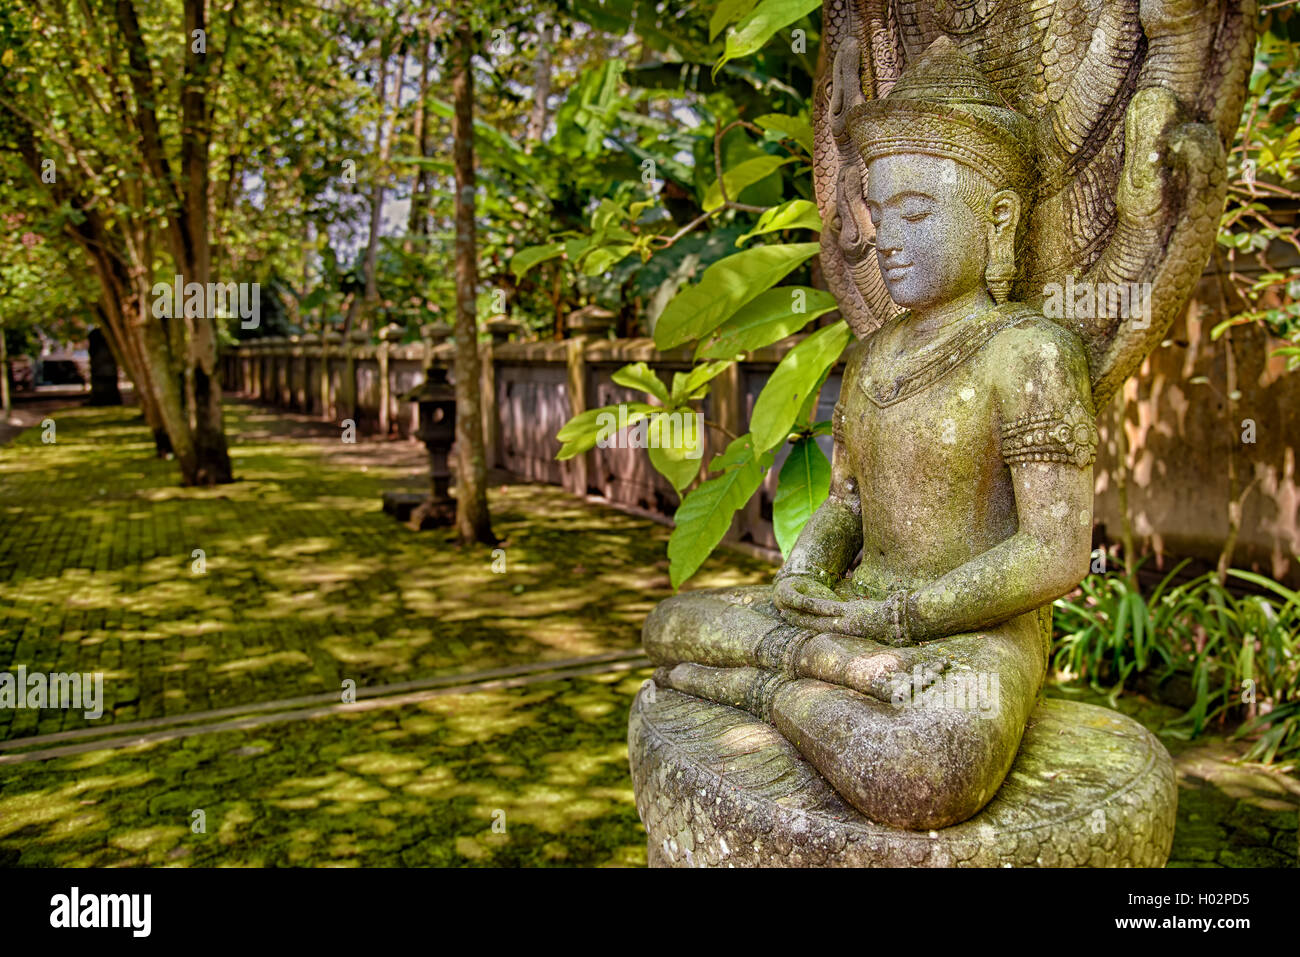 Stone image of meditating Buddha in Mendut temple, Indoensia - Stock Image